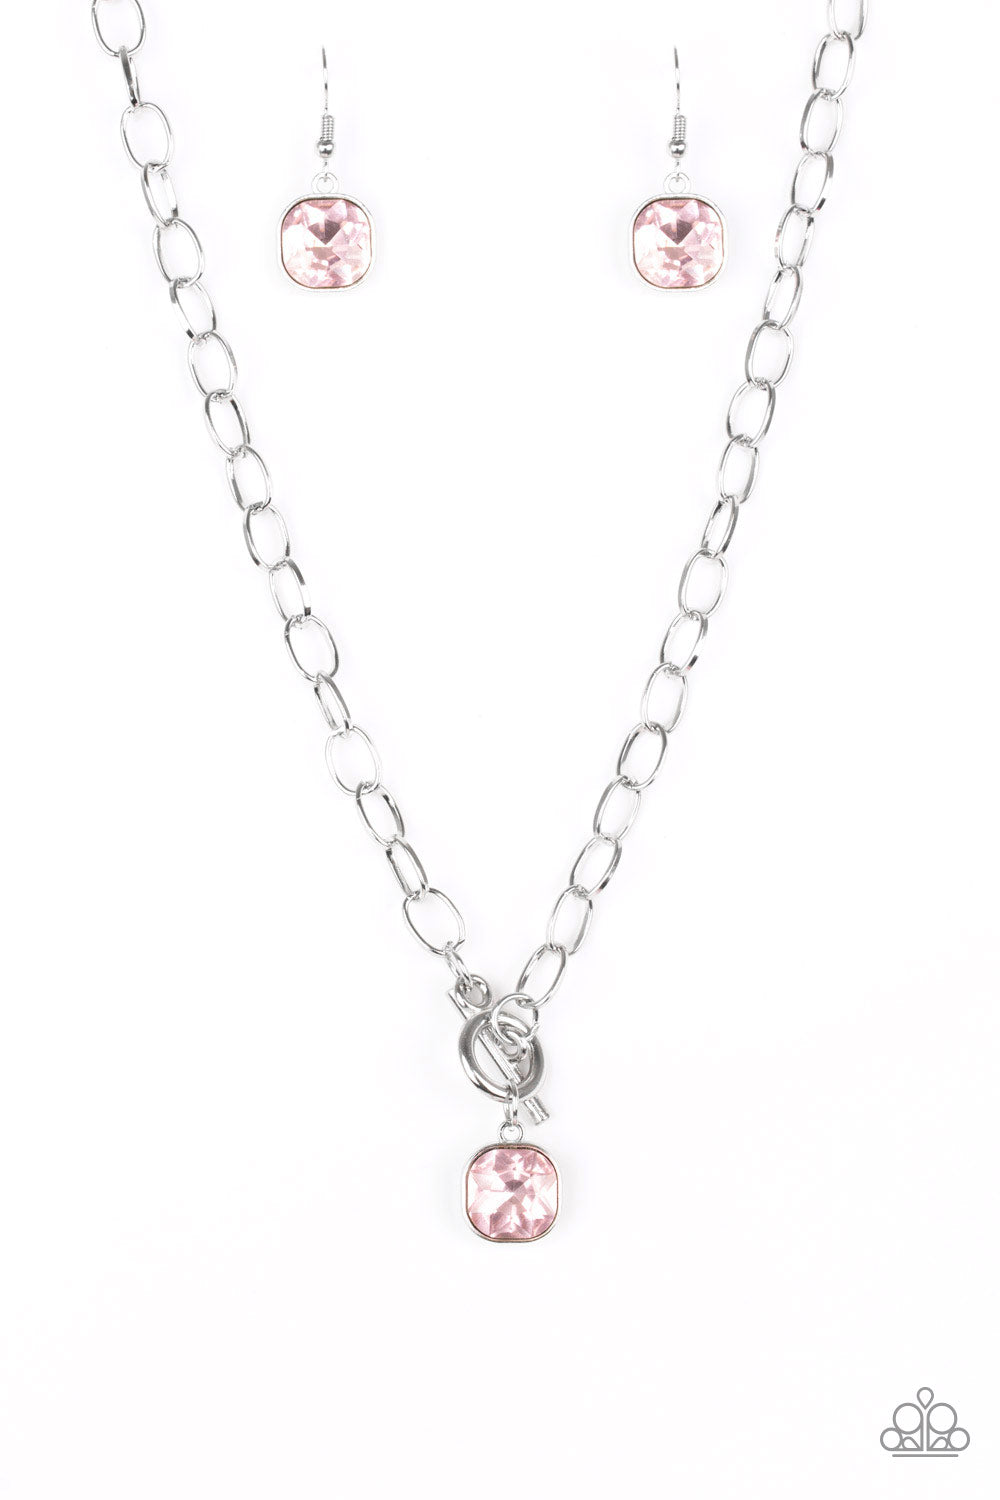 Paparazzi Accessories - Dynamite Dazzle - Pink Necklace Set - JMJ Jewelry Collection